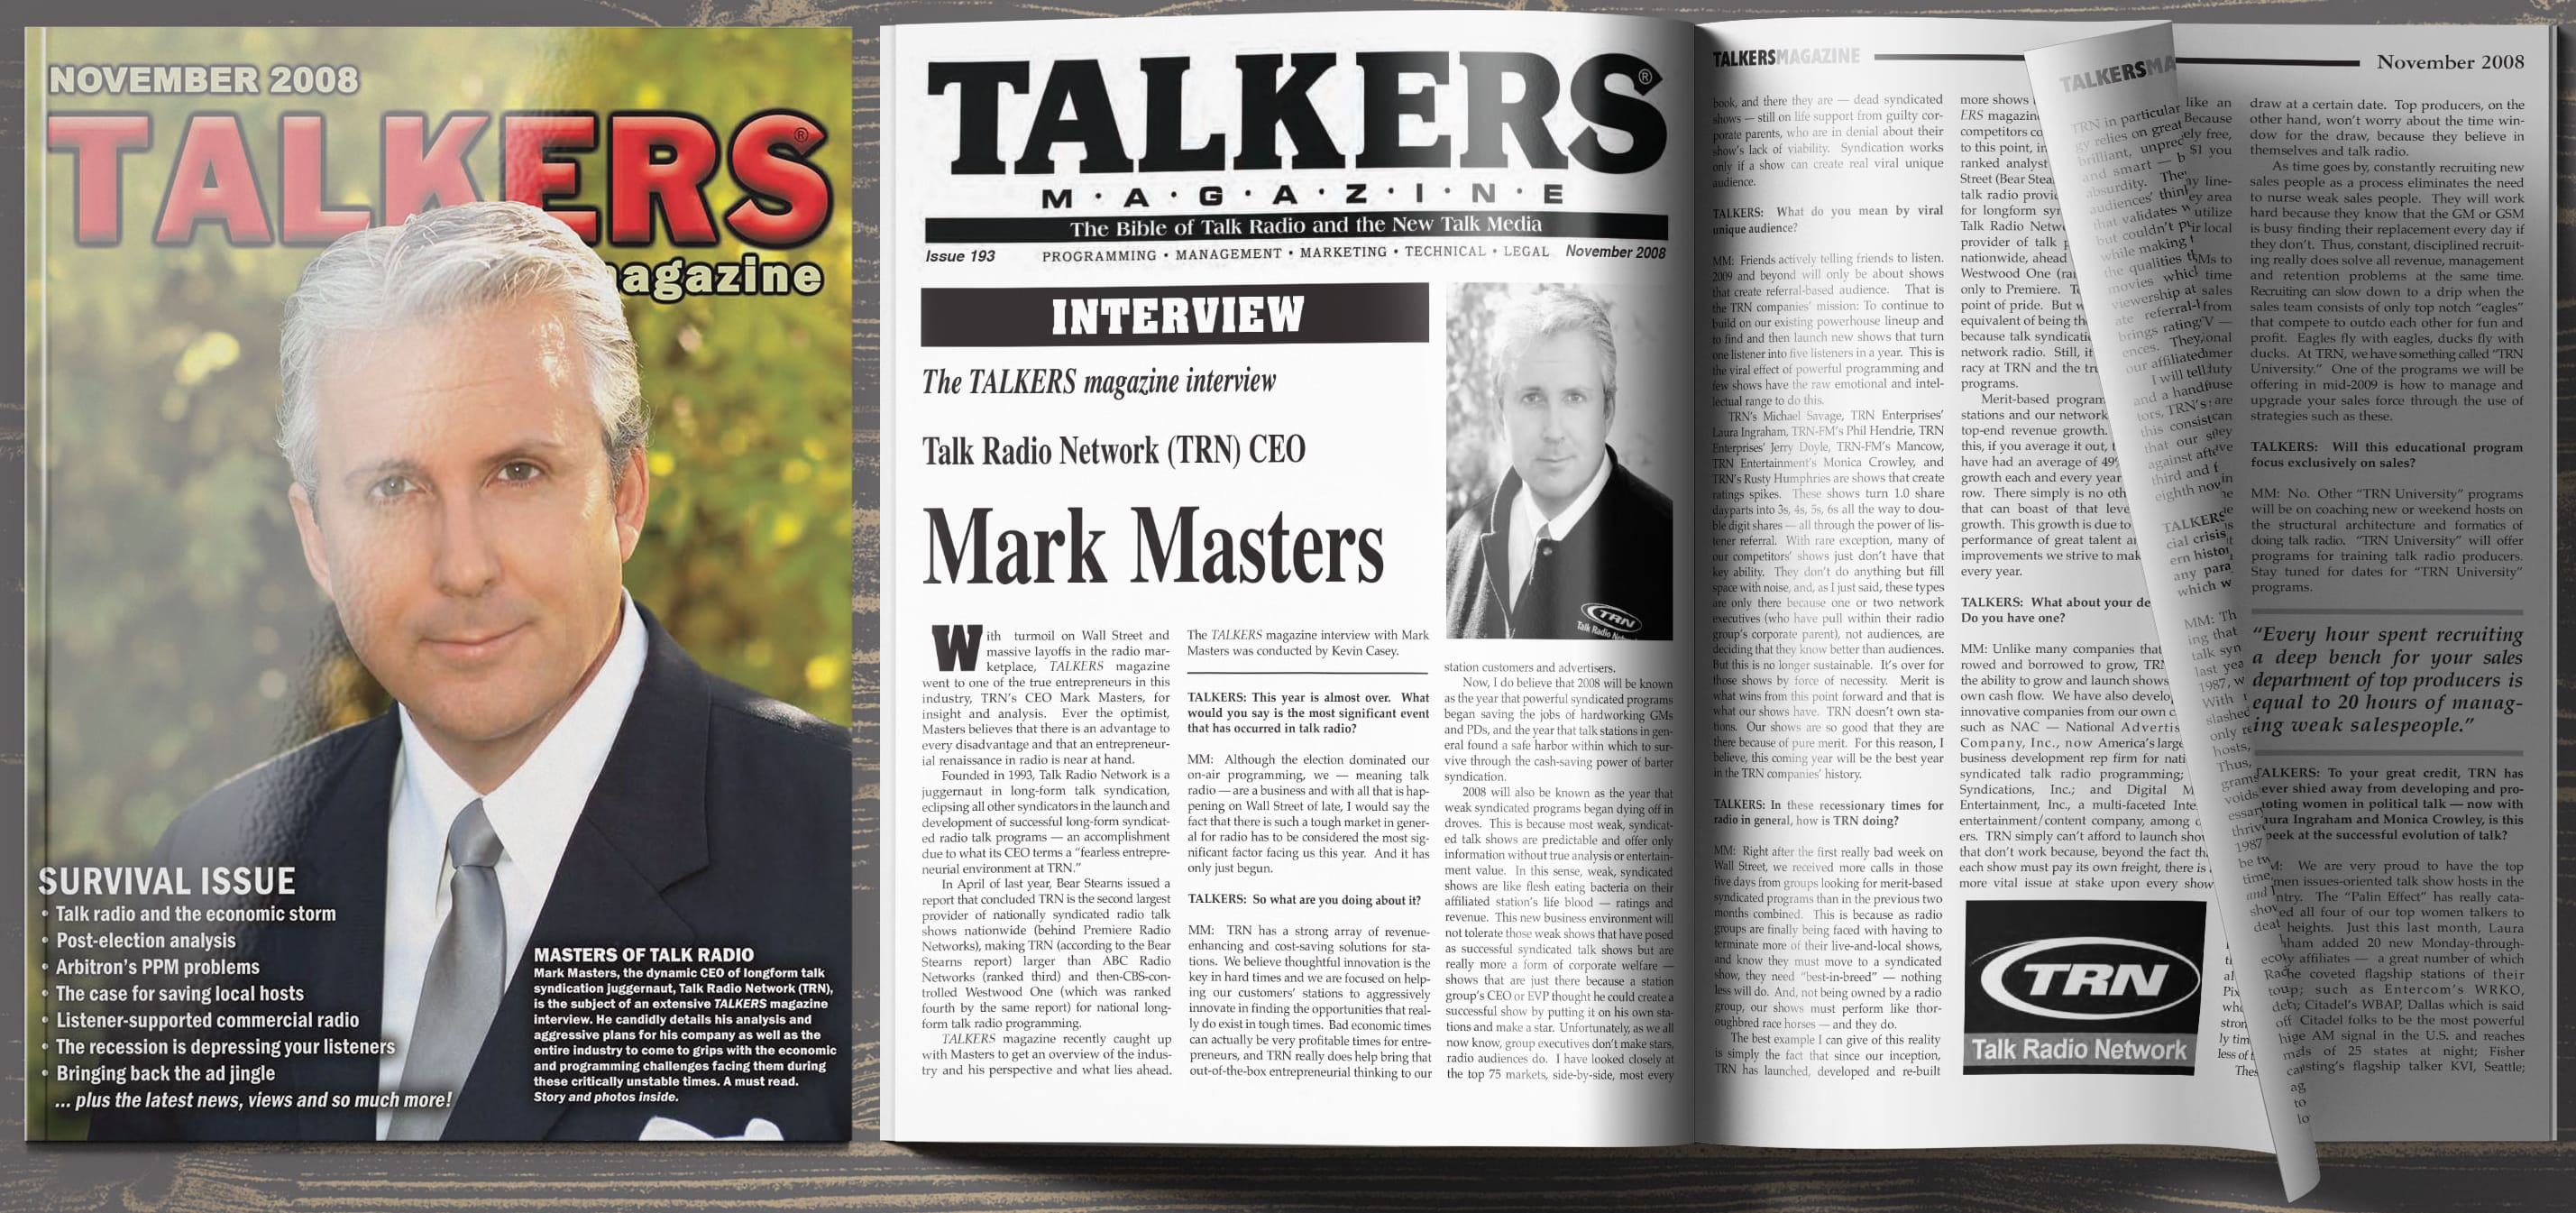 Magazine spread of TALKERS Magazine interview with Mark Masters